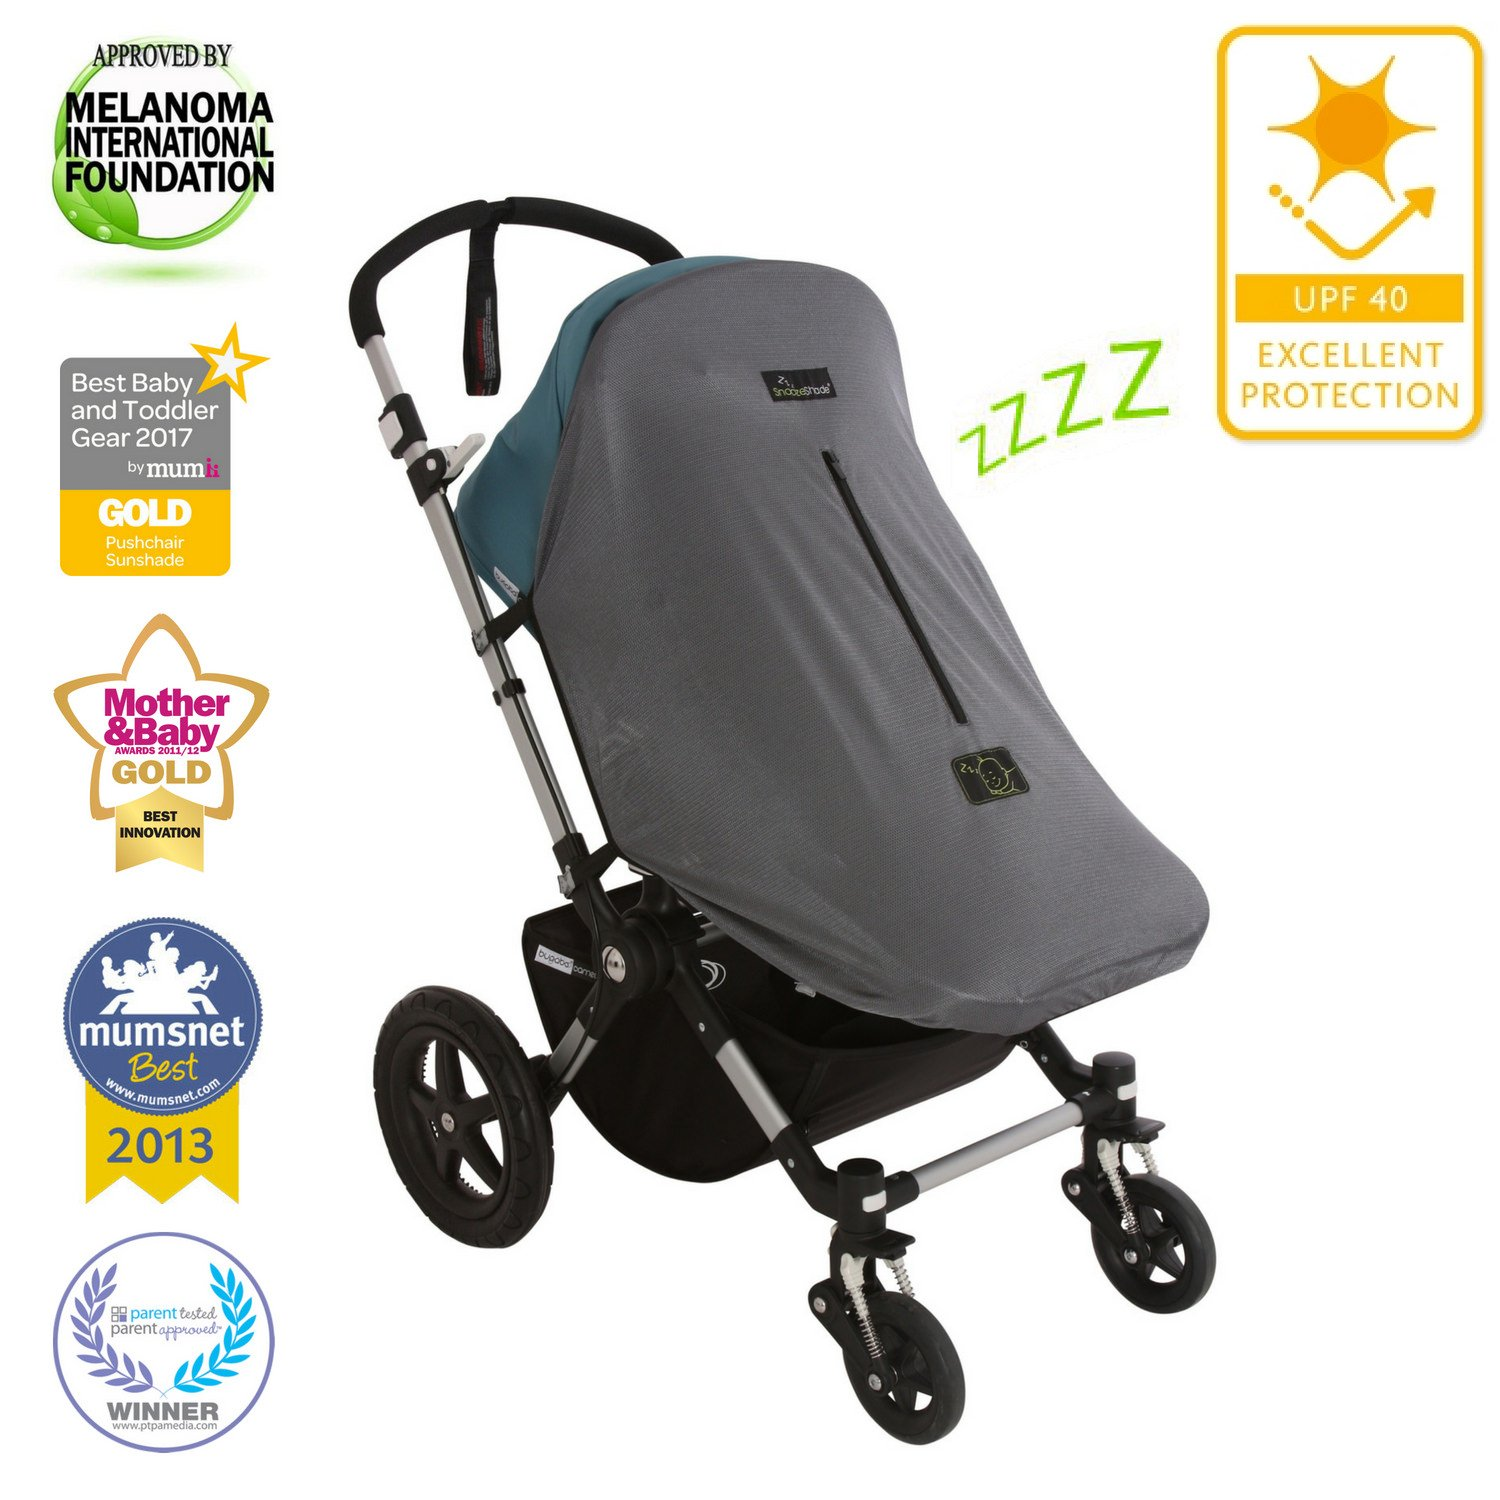 SnoozeShade Original Deluxe | Sun Shade and Blackout Blind for Strollers | Blocks 97.5% of